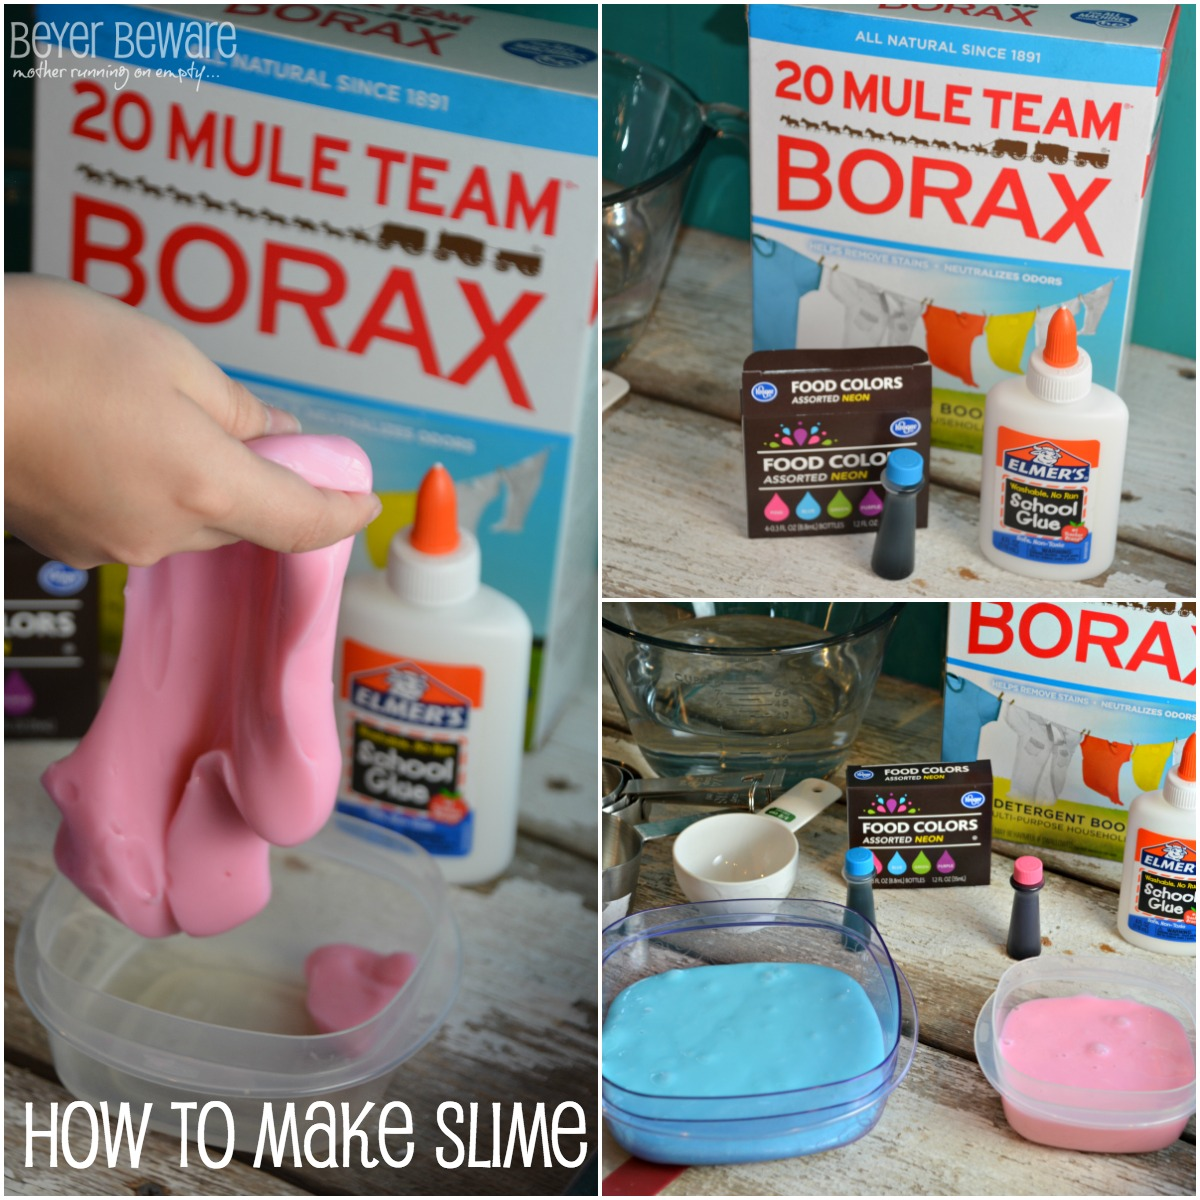 How to Make Slime - Beyer Beware - photo#11